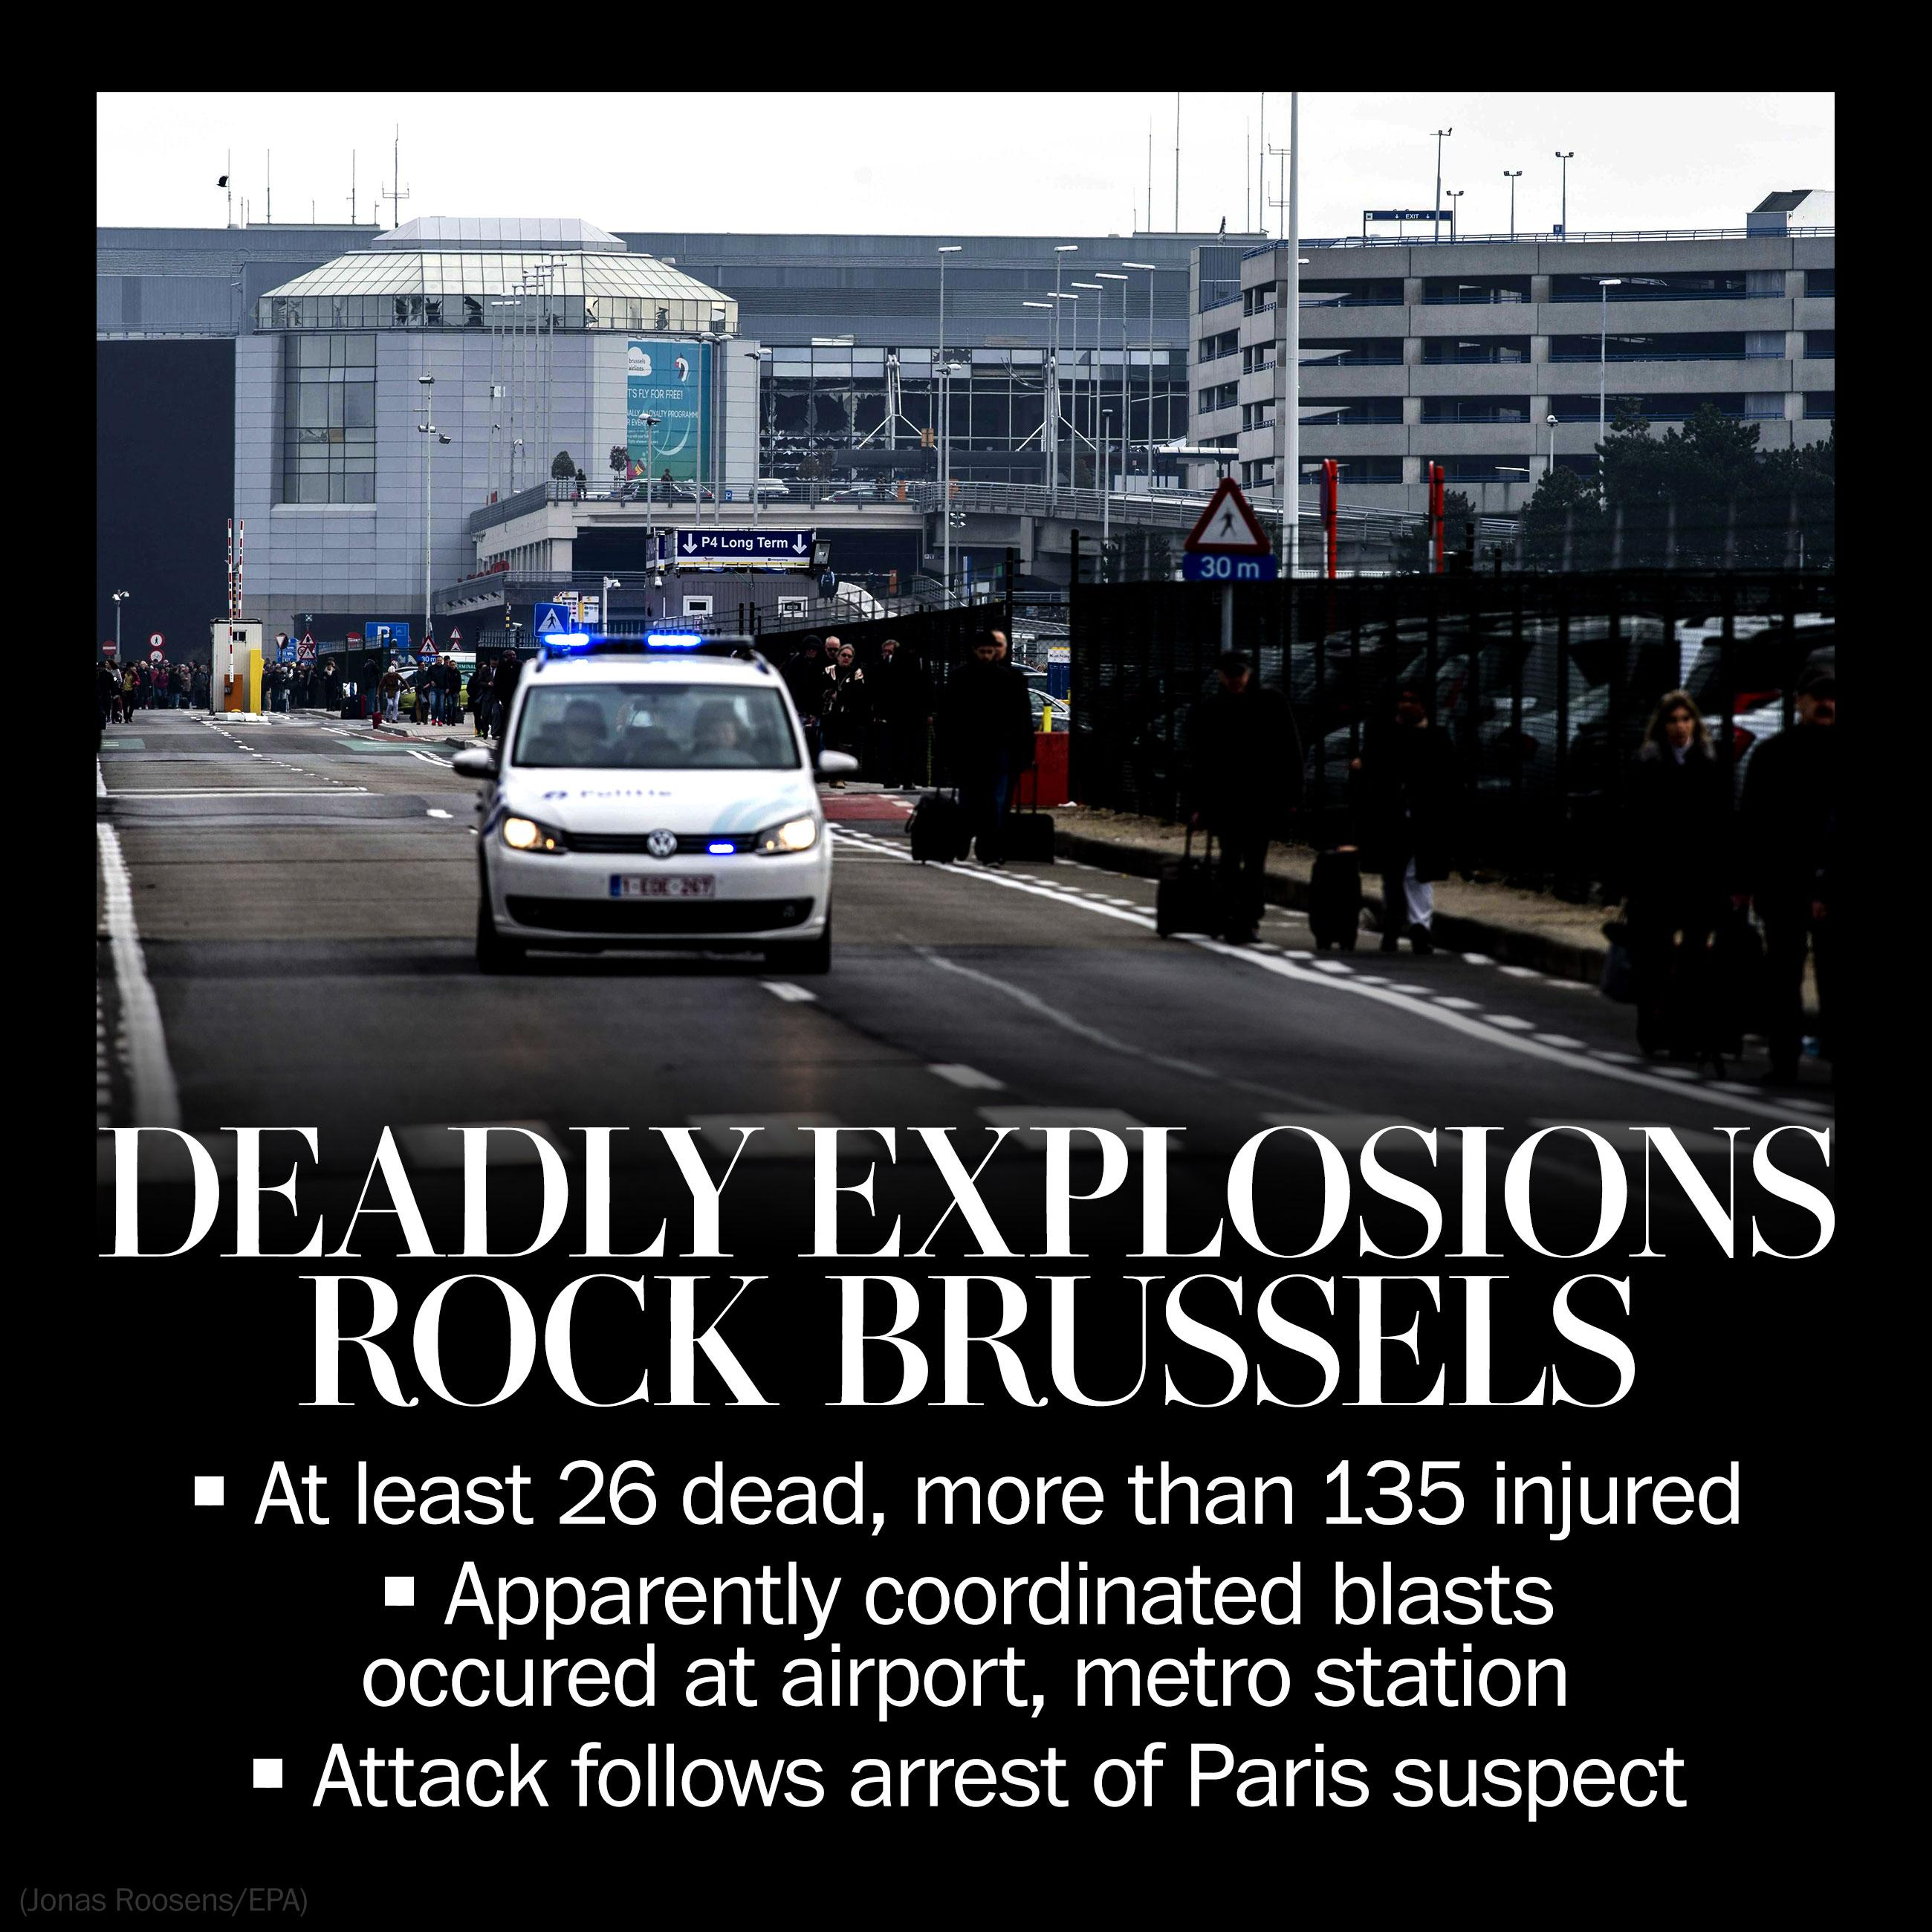 Two explosions detonated at Brussels airport